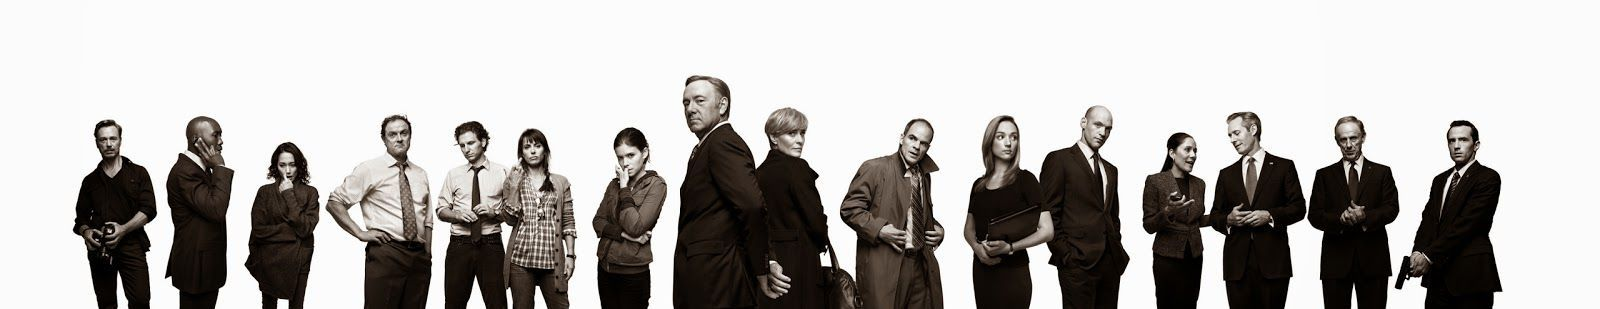 HOUSE-OF-CARDS-CAST